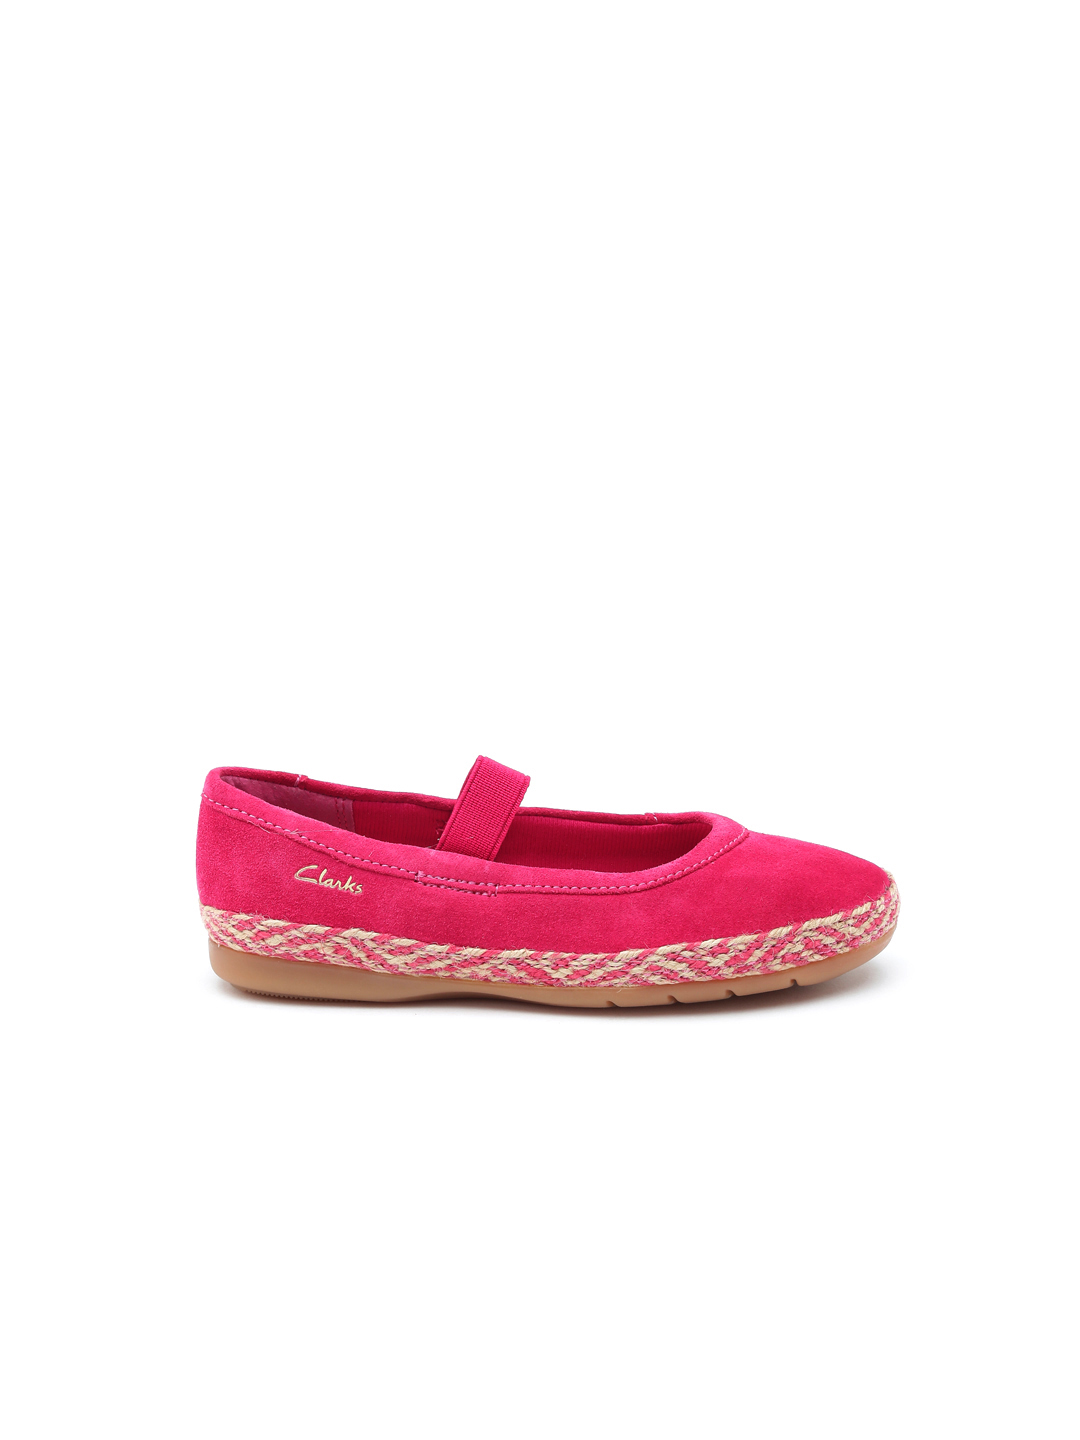 Clarks Girls Pink Flat Shoes